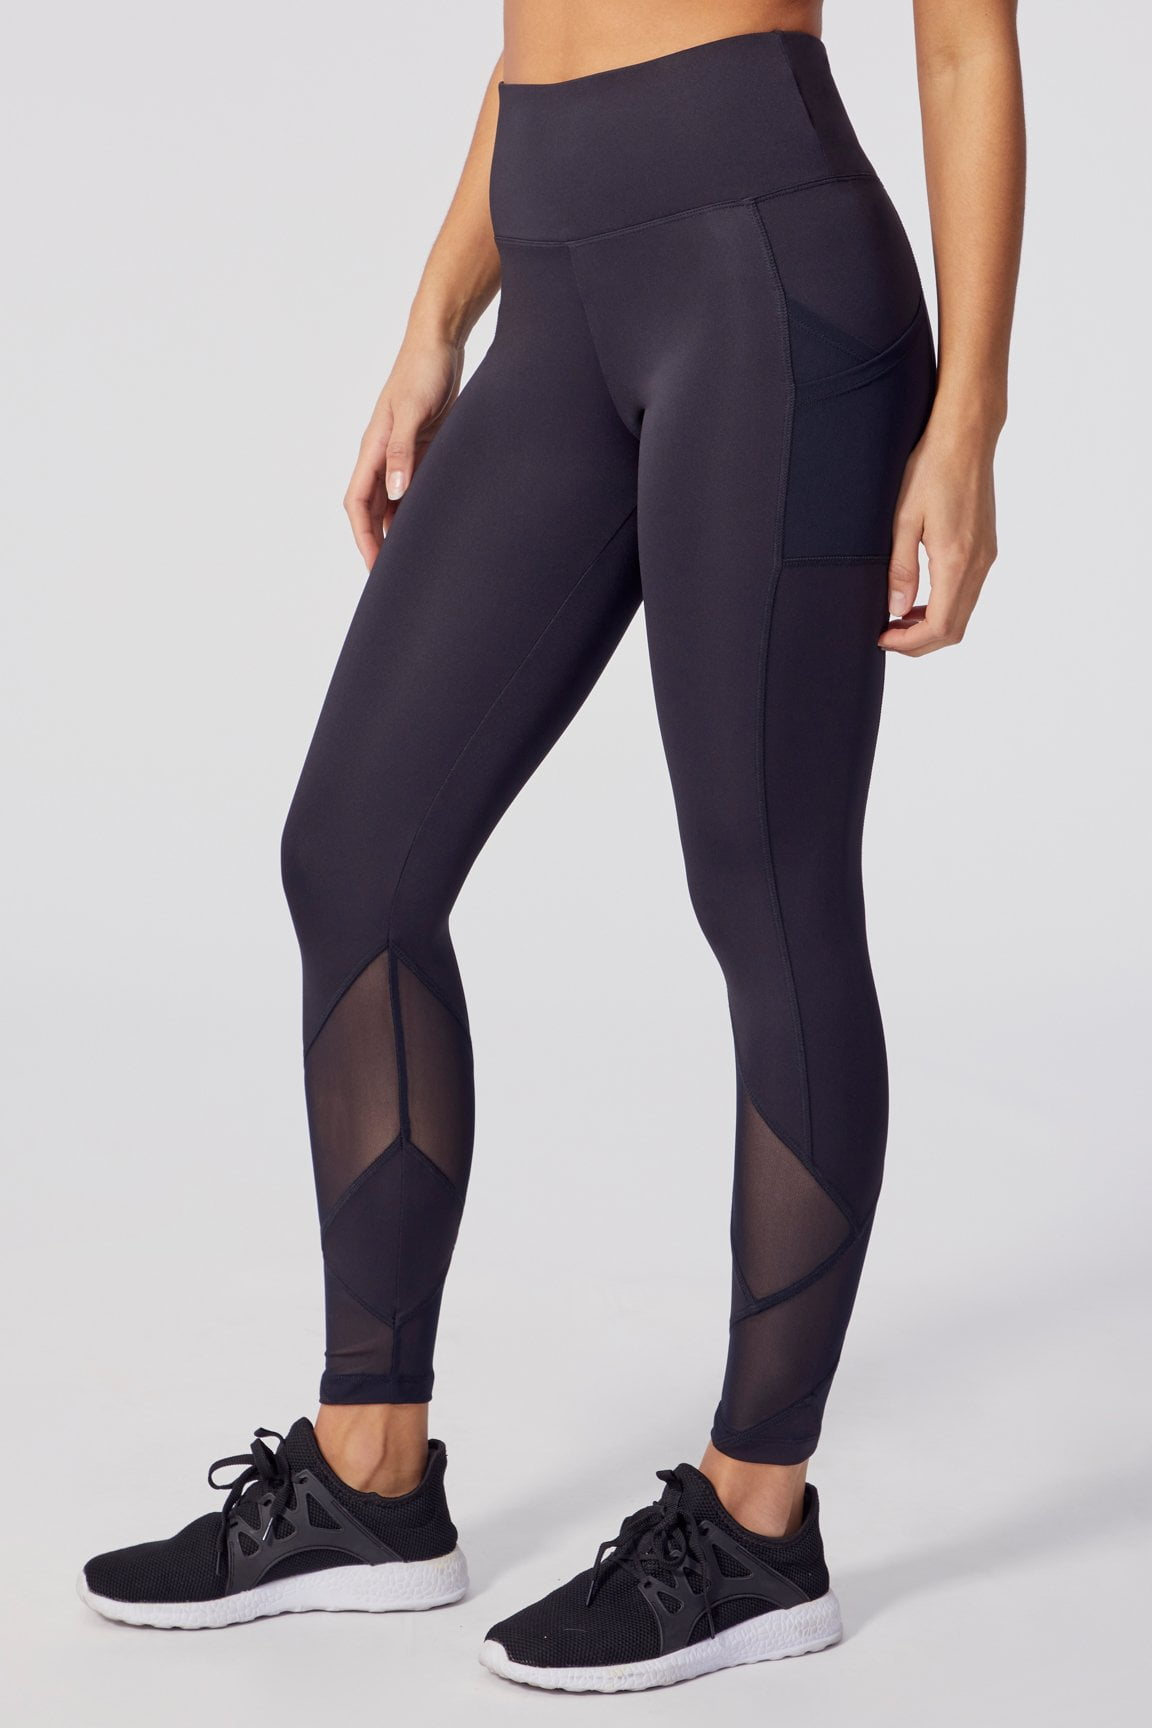 V-set Tummy Control Leggings